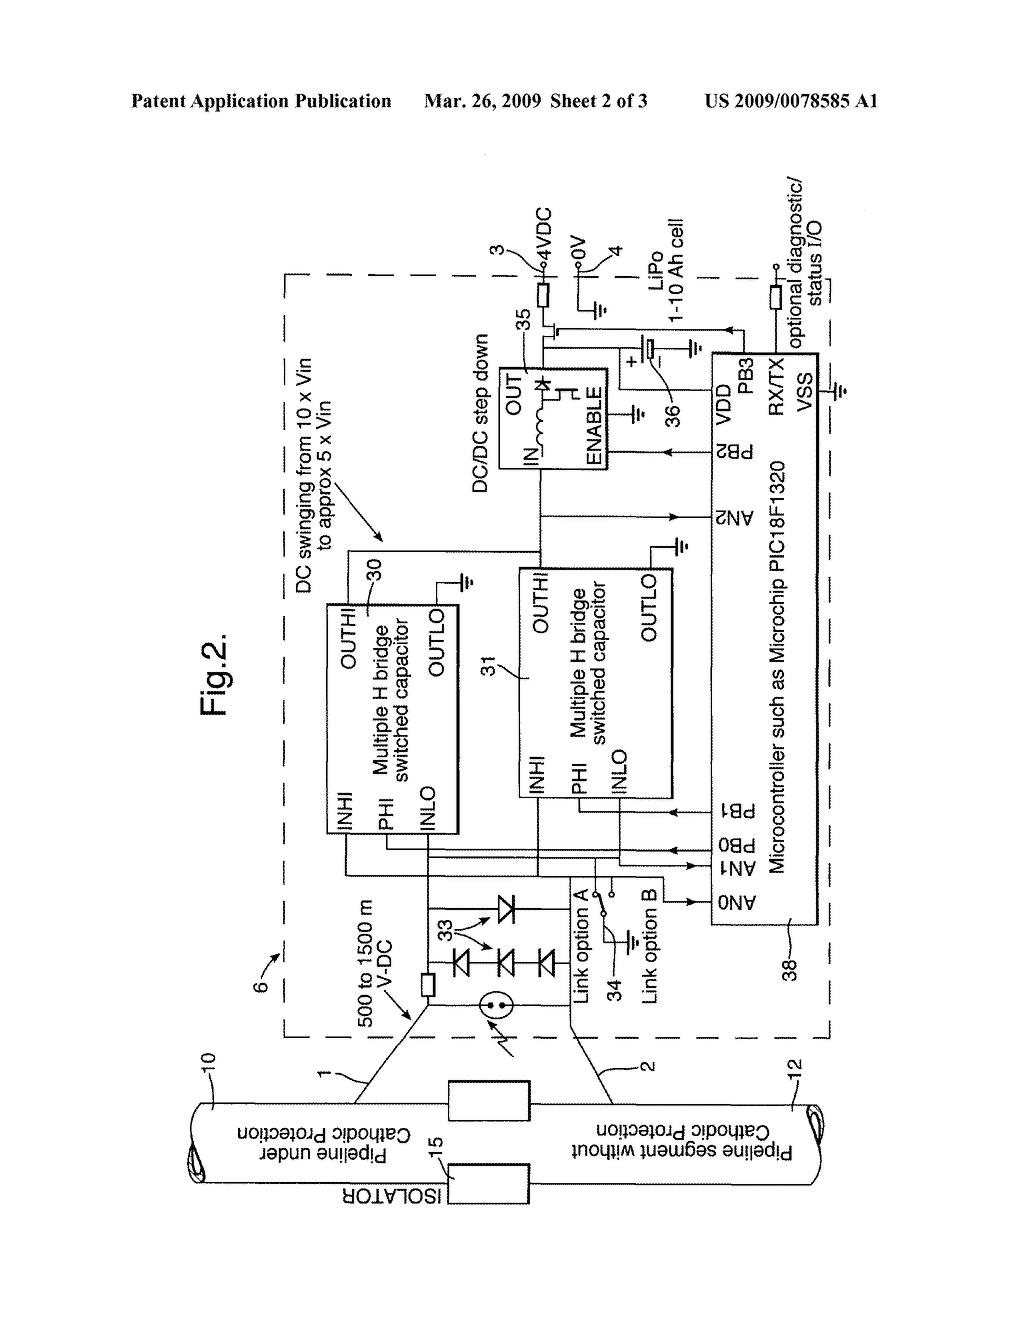 Using An Impressed Current Cathodic Protection System To Power H Bridge Circuit Diagram Electrical Appliances Schematic And Image 03